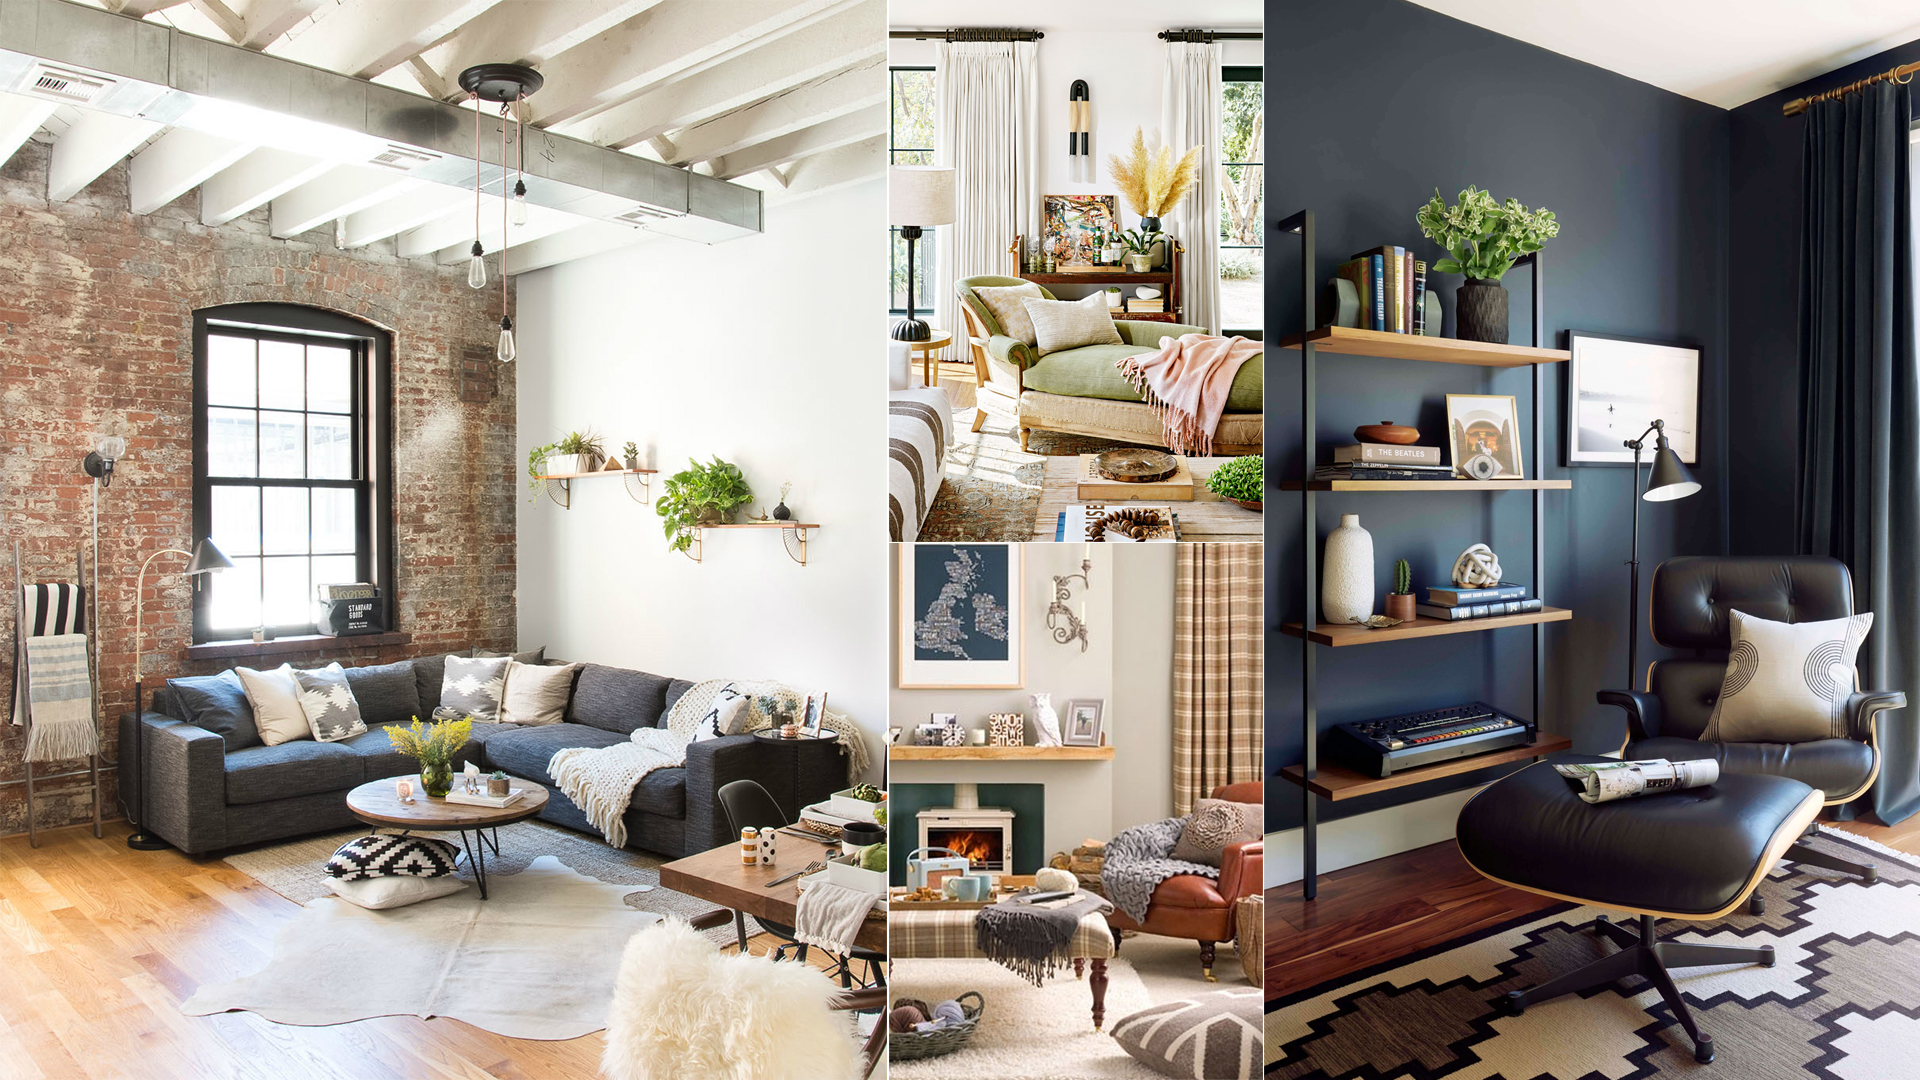 Effortless Ways to Make your Home Look Cozy